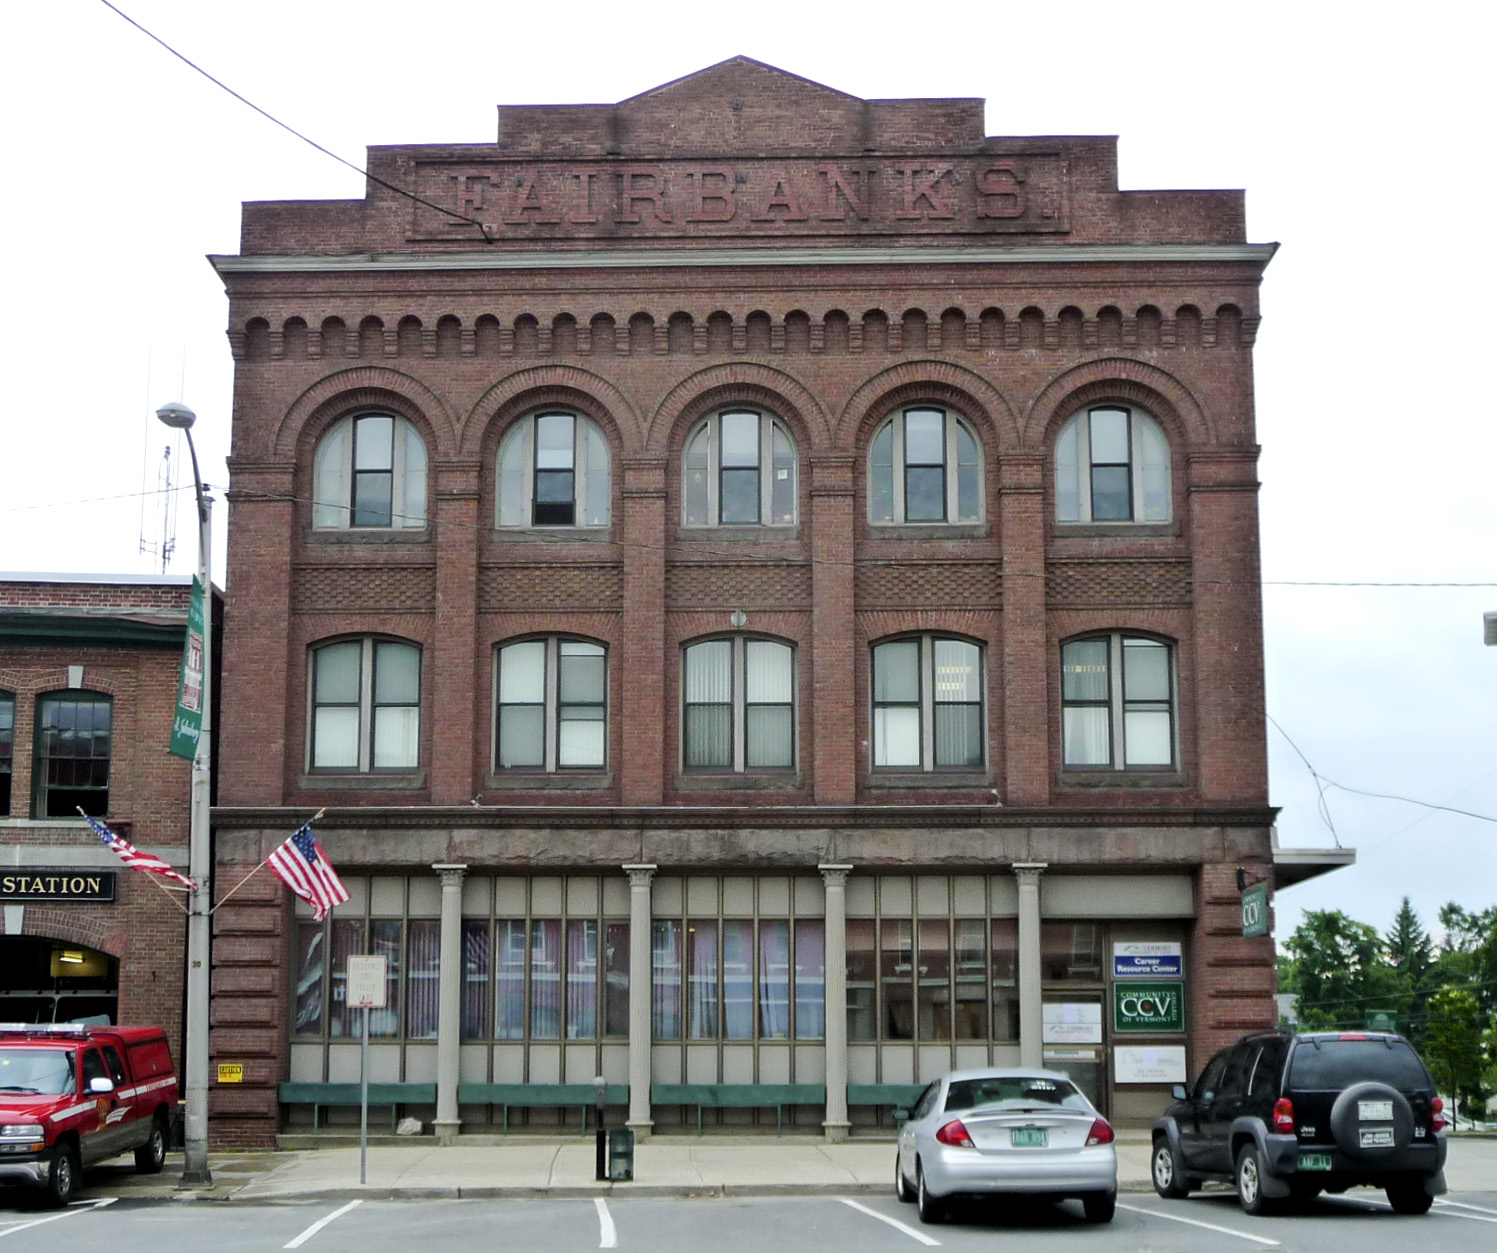 Fairbanks Building, St. Johnsbury